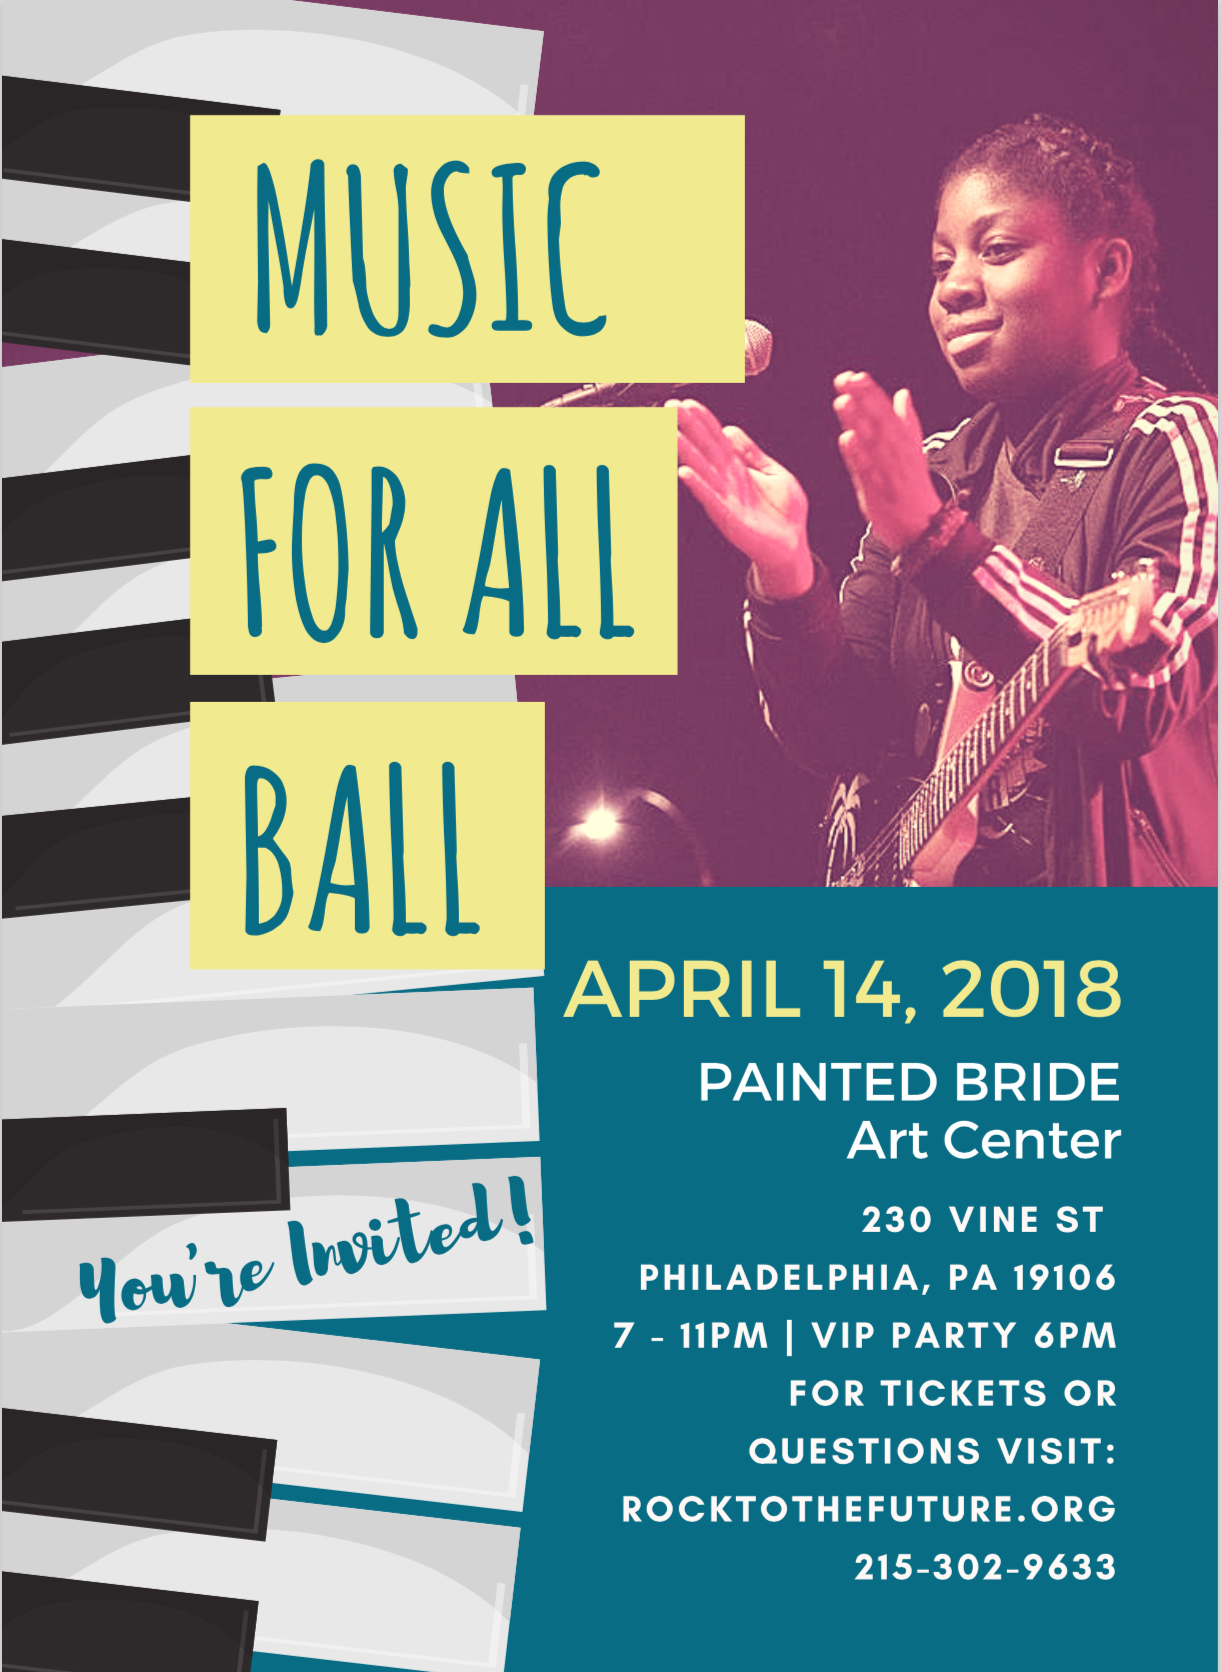 April 14th, 2018 - Music For All BallPainted Bride Art Center230 Vine St Philly7-11pm | VIP Party 6pm -